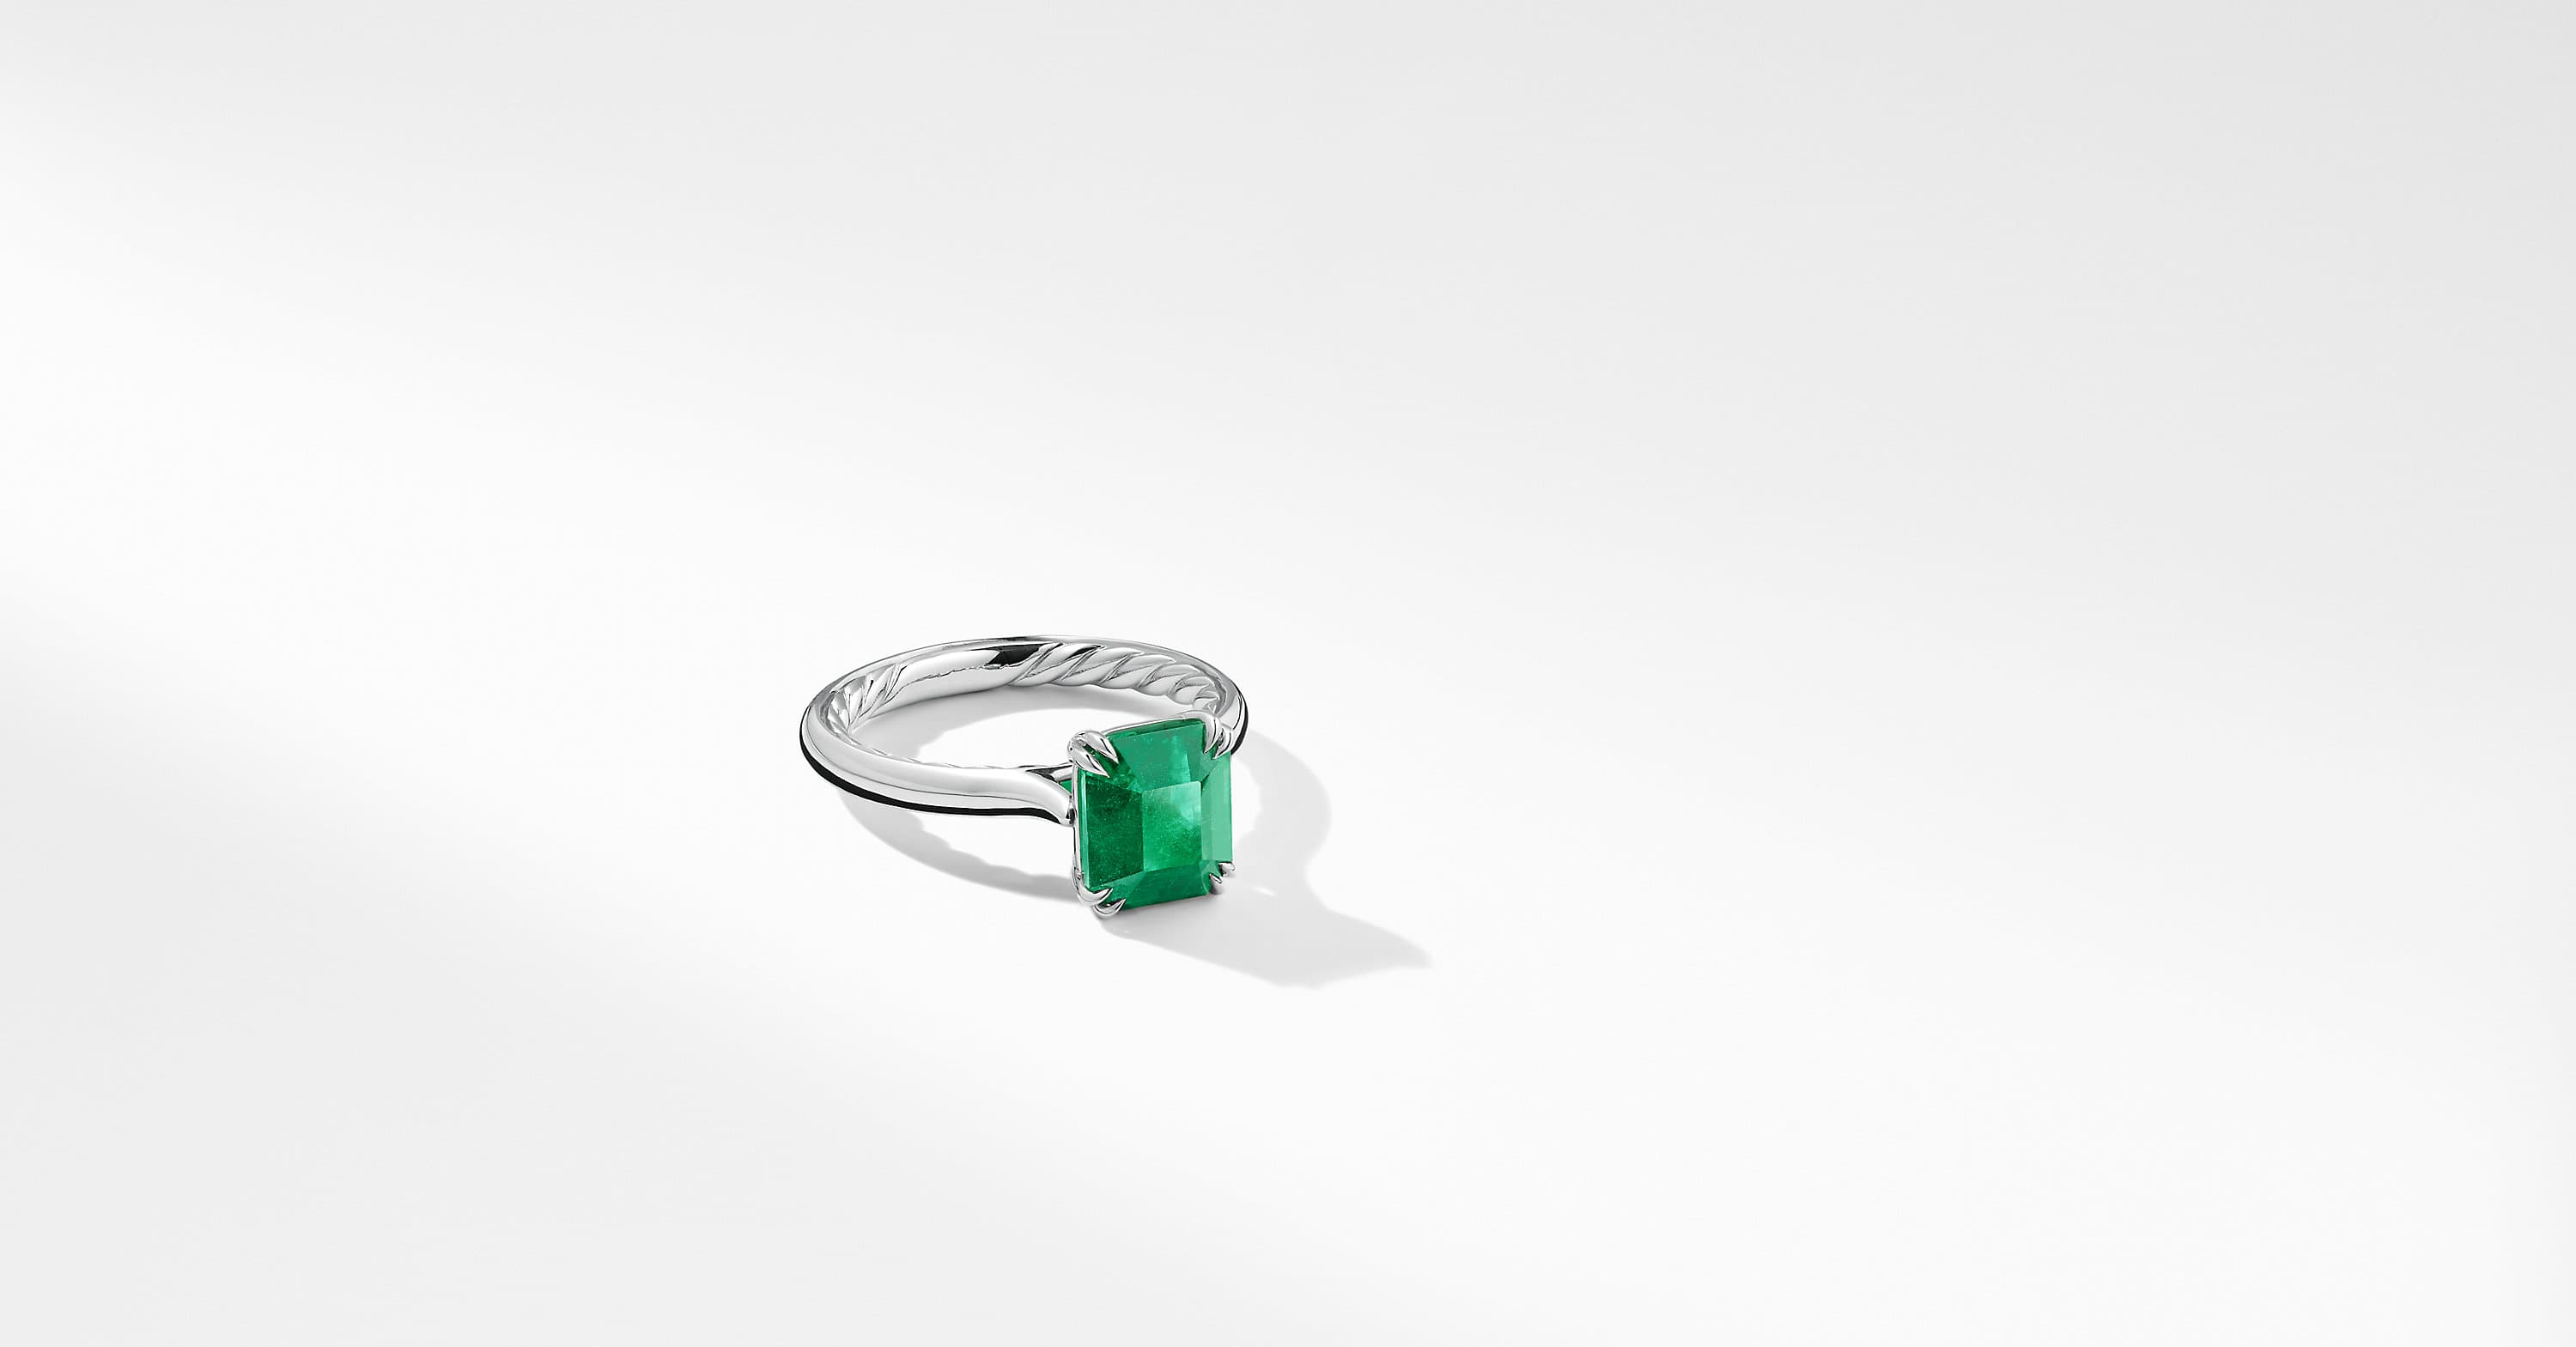 DY Eden Engagement Ring with Green Emerald in Platinum, Emerald